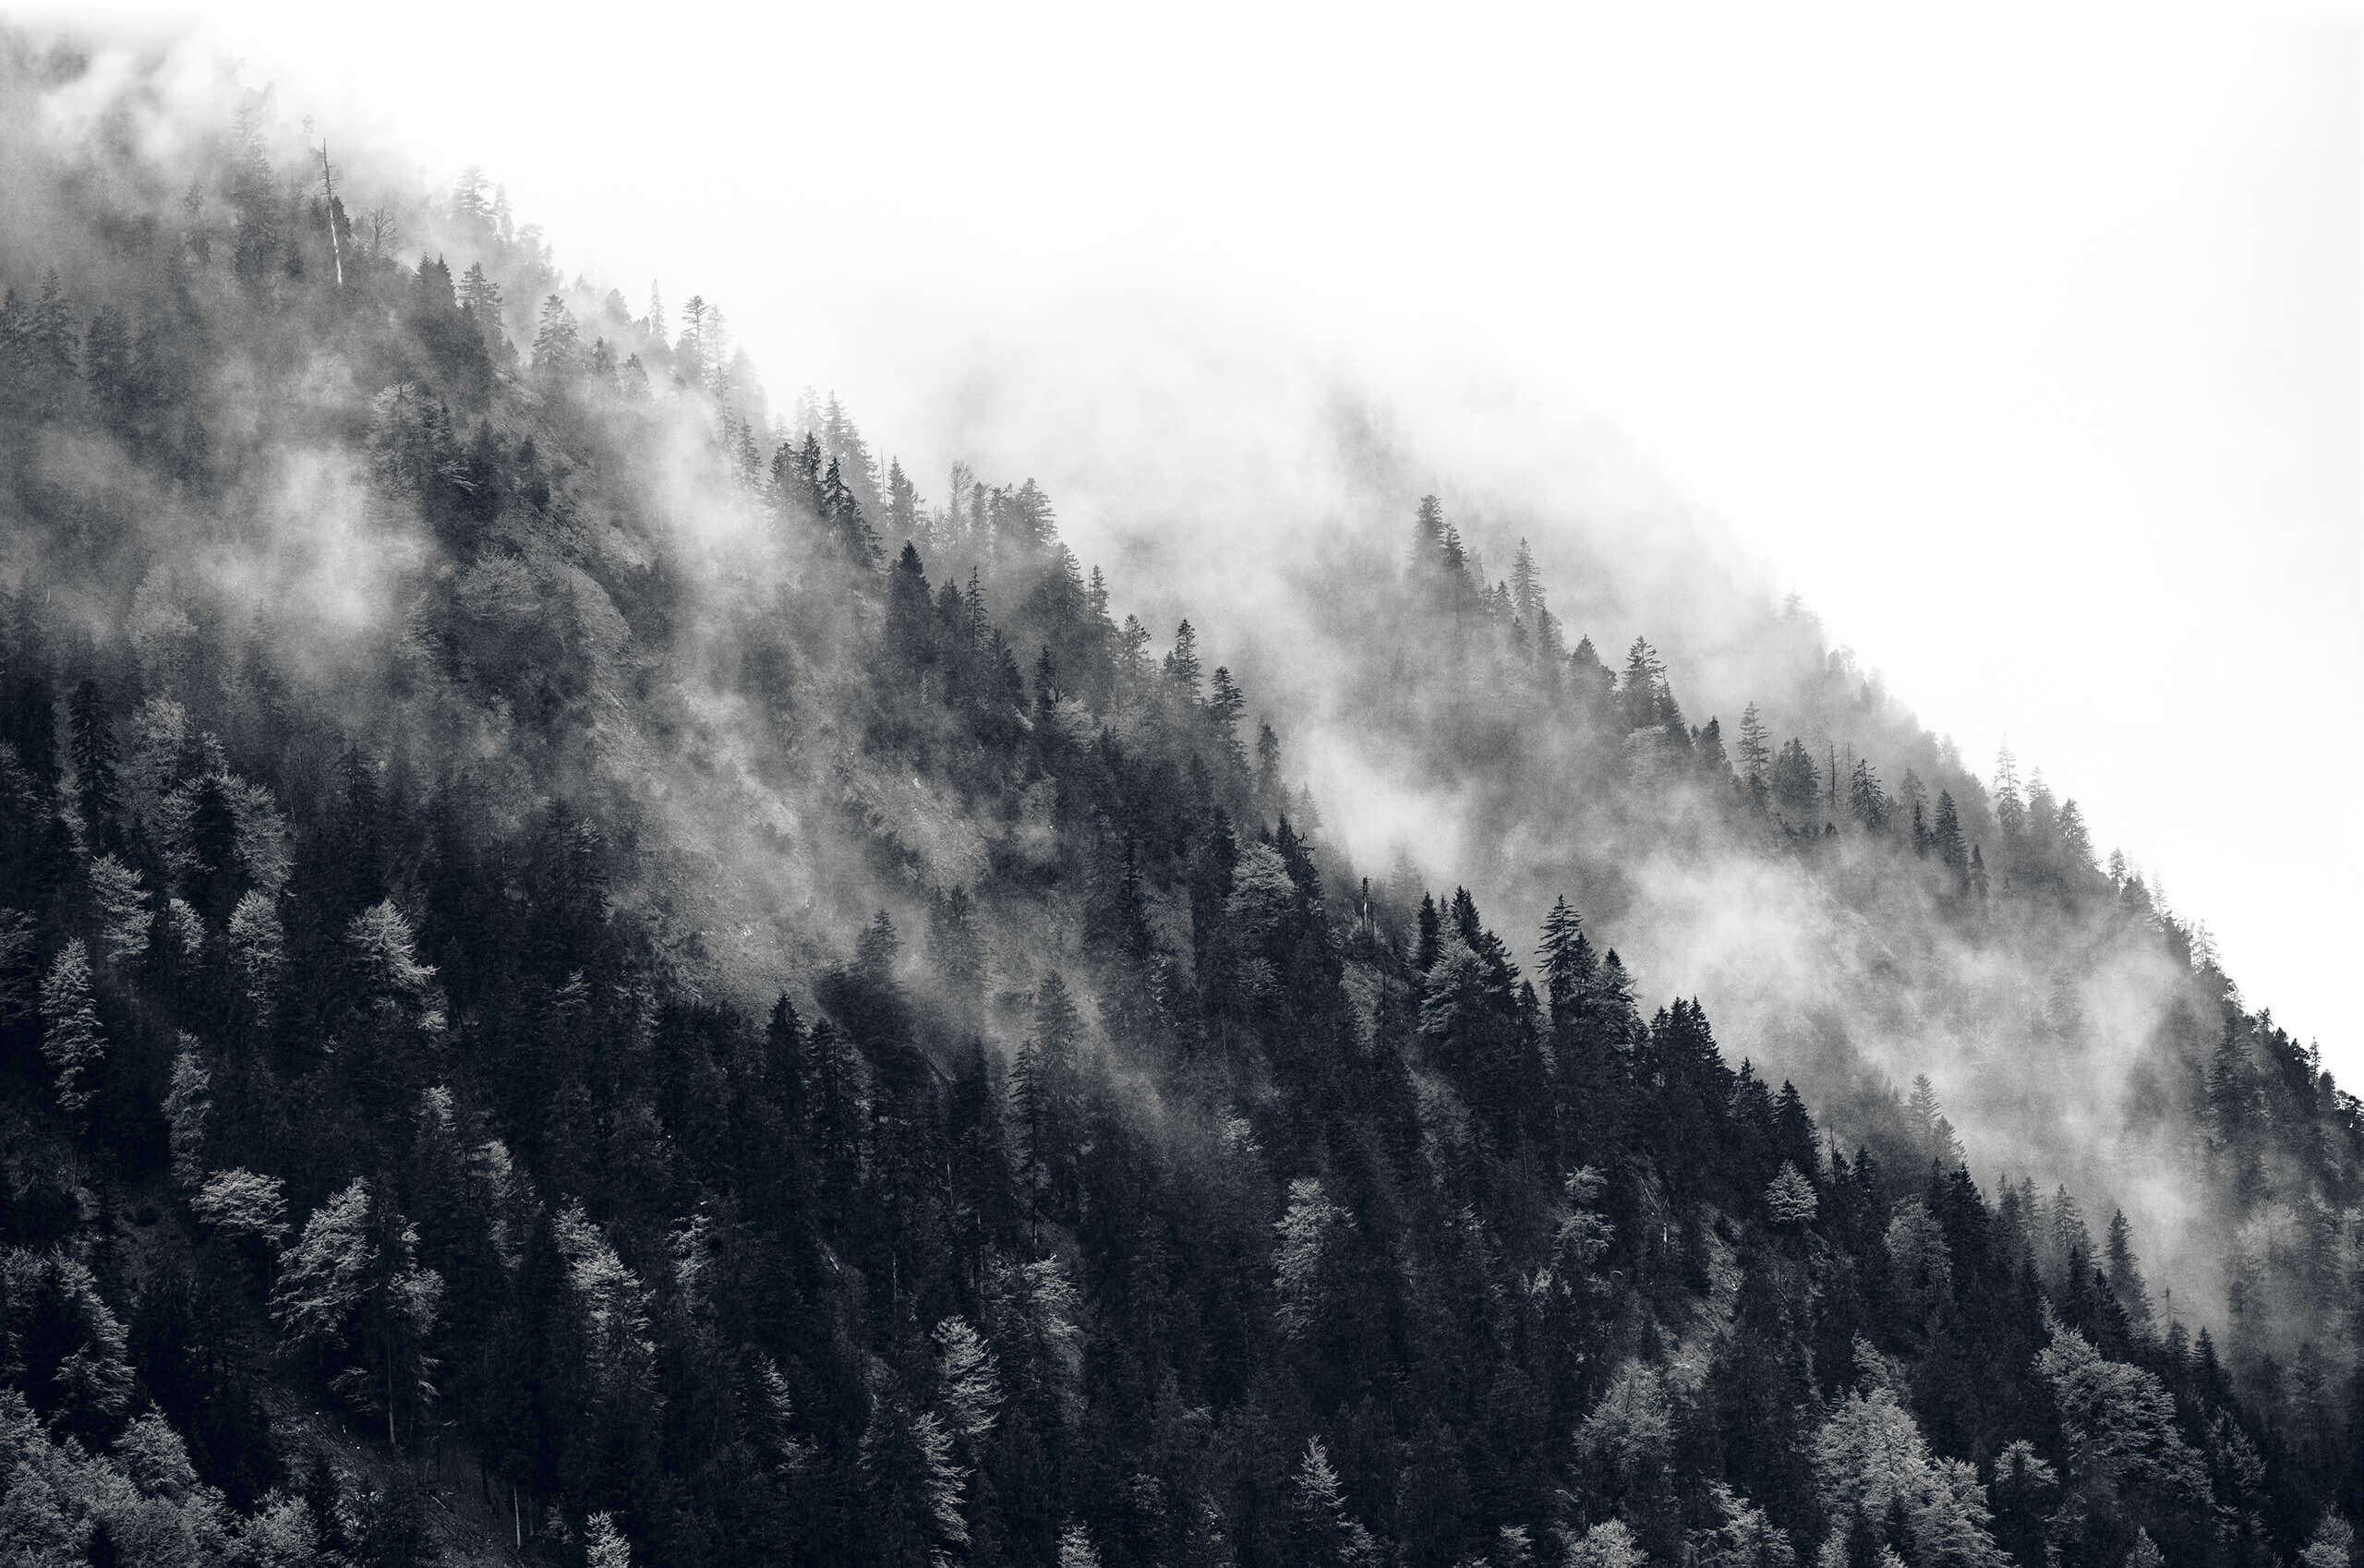 Steep moutainside with fir-trees and mist.